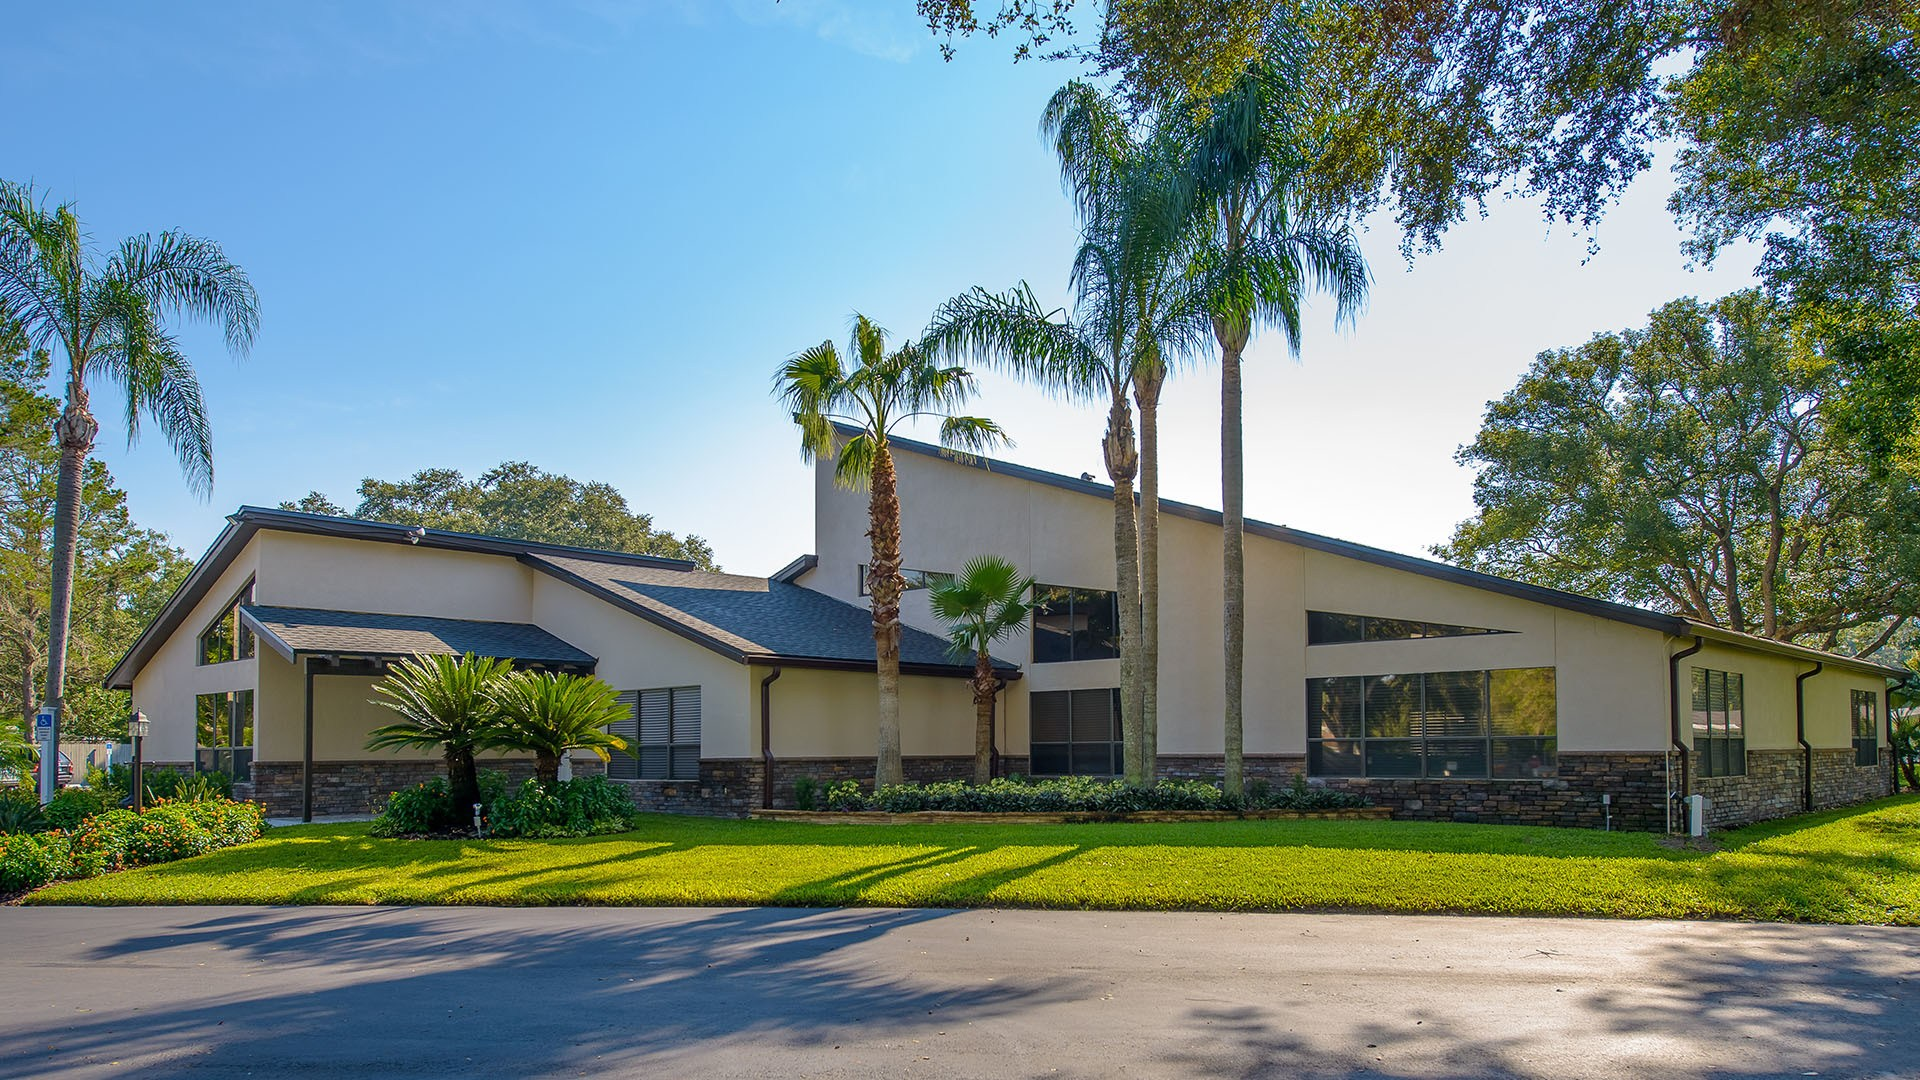 Clubhouse at Sundance 55+ Manufactured Home Community in Zephyrhills FL